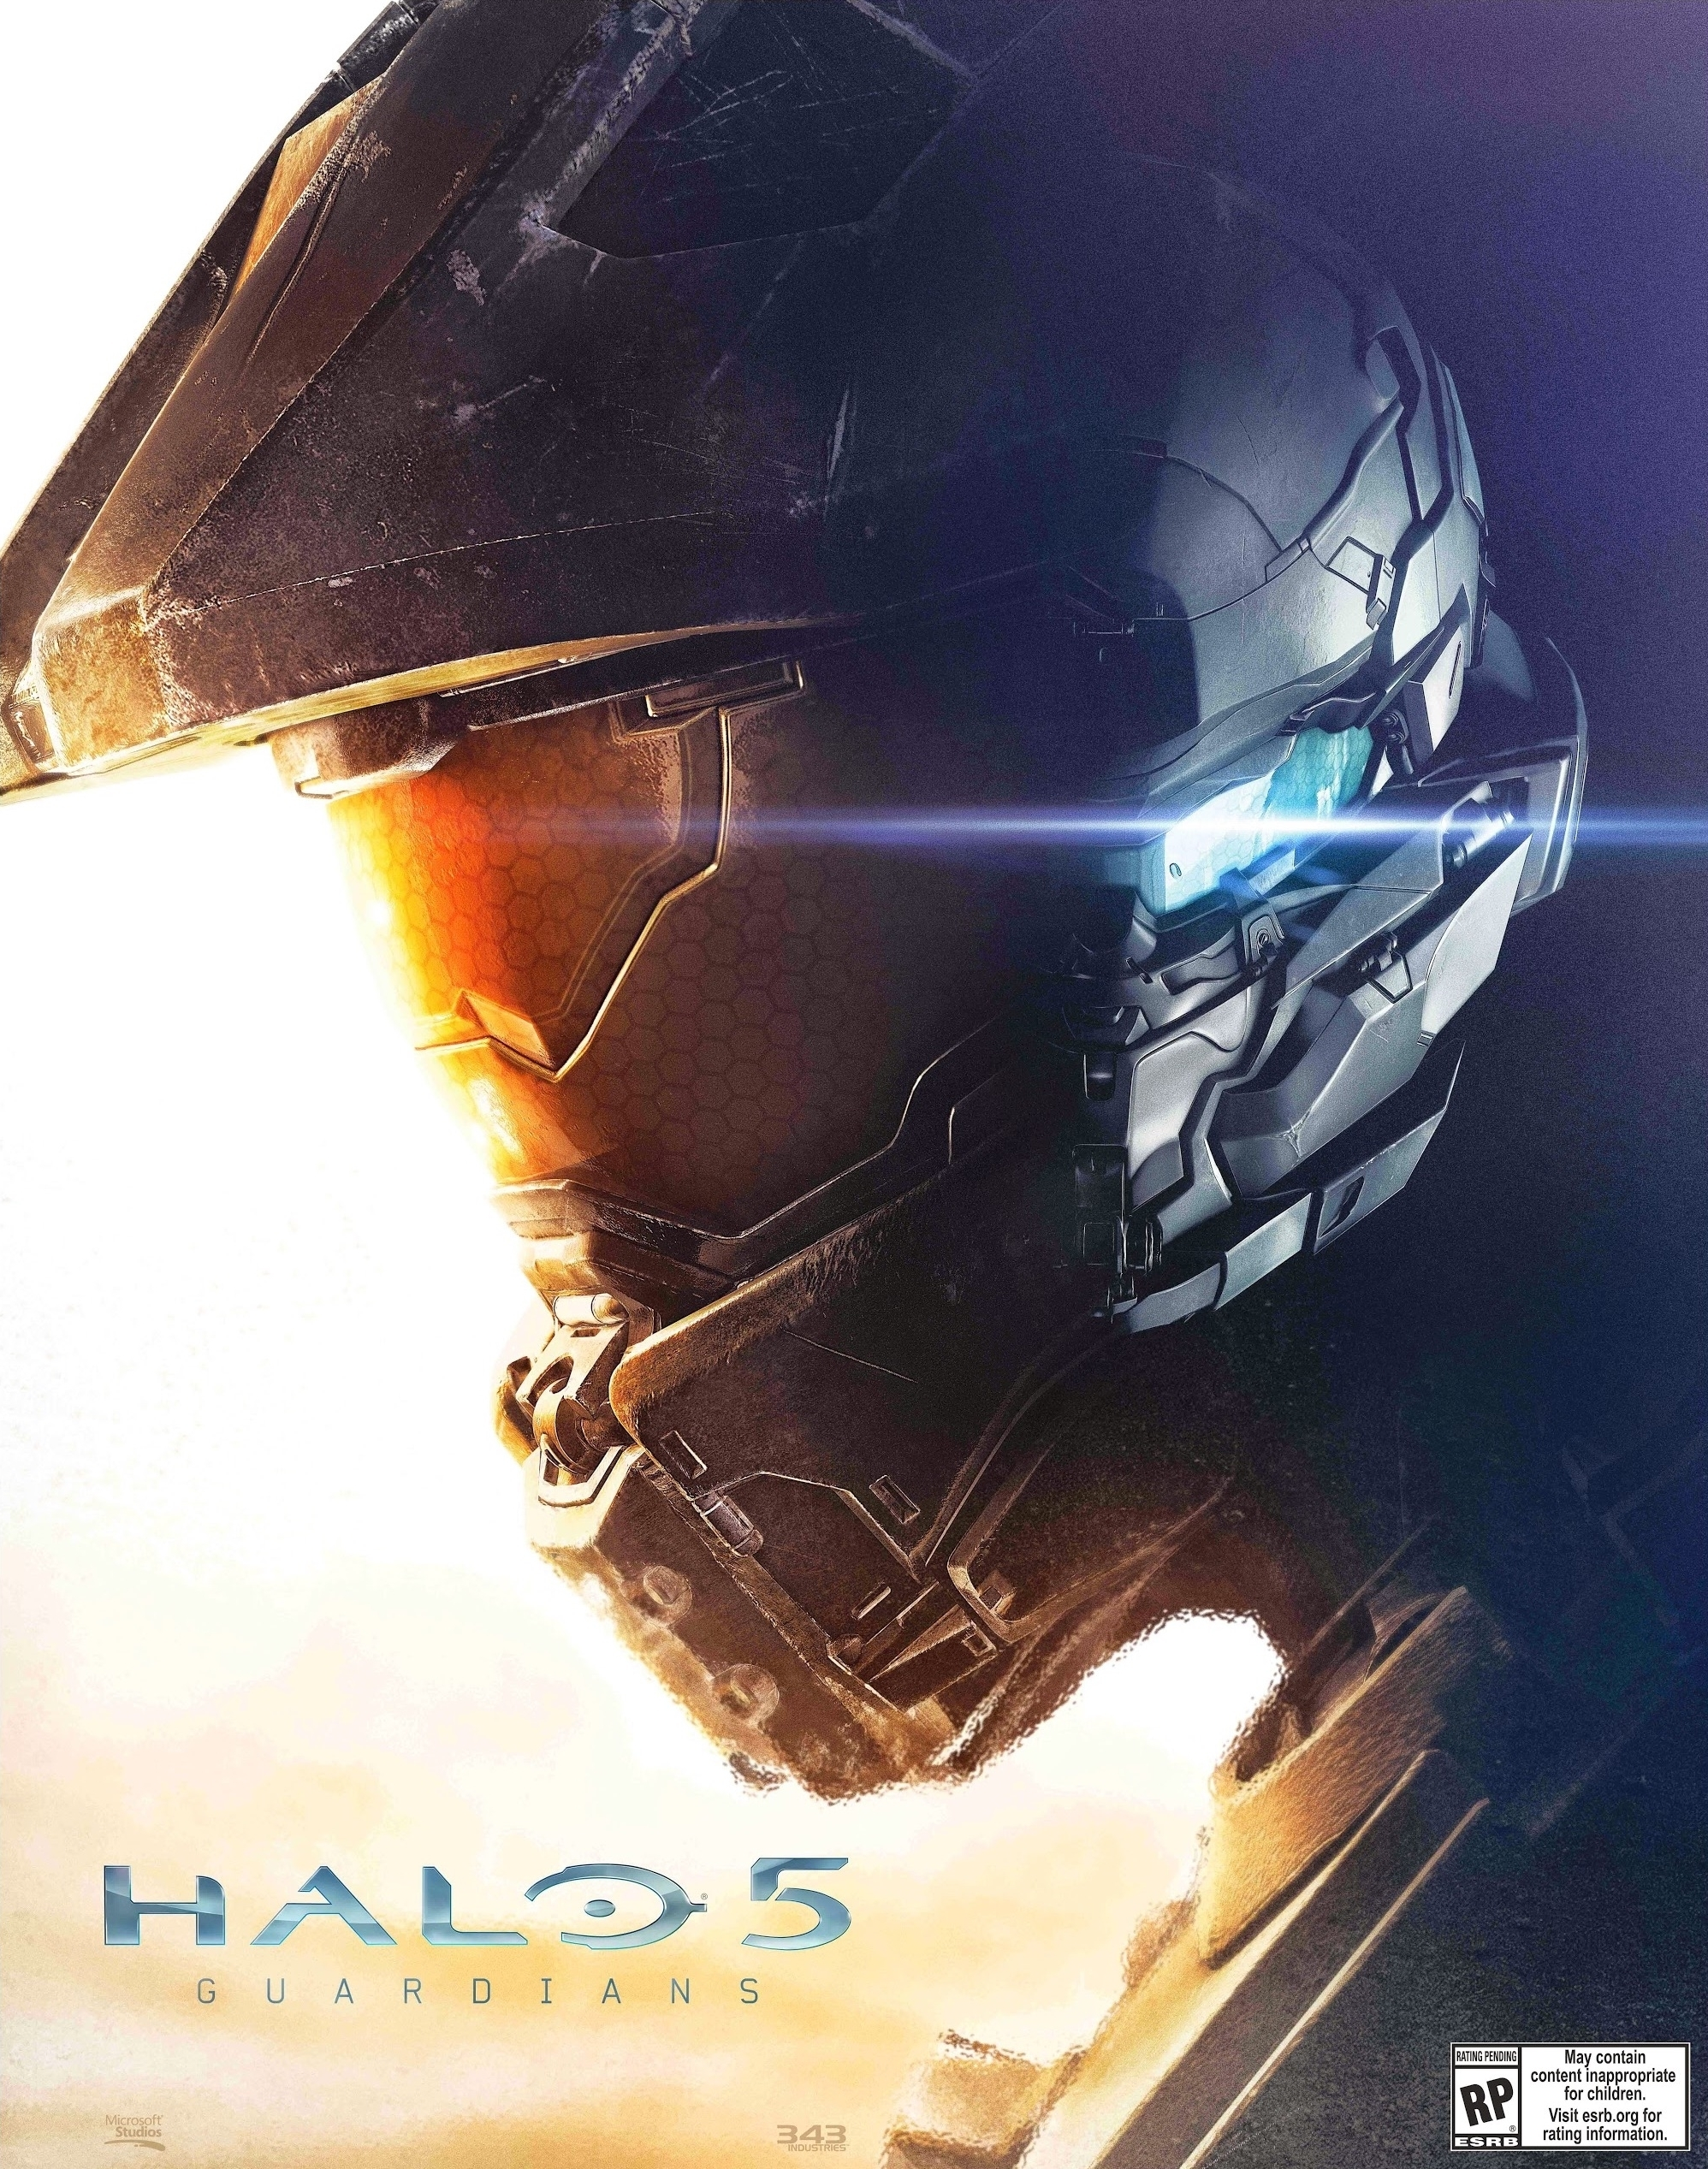 Halo 5 Official Cover The Cover Art For Halo 5